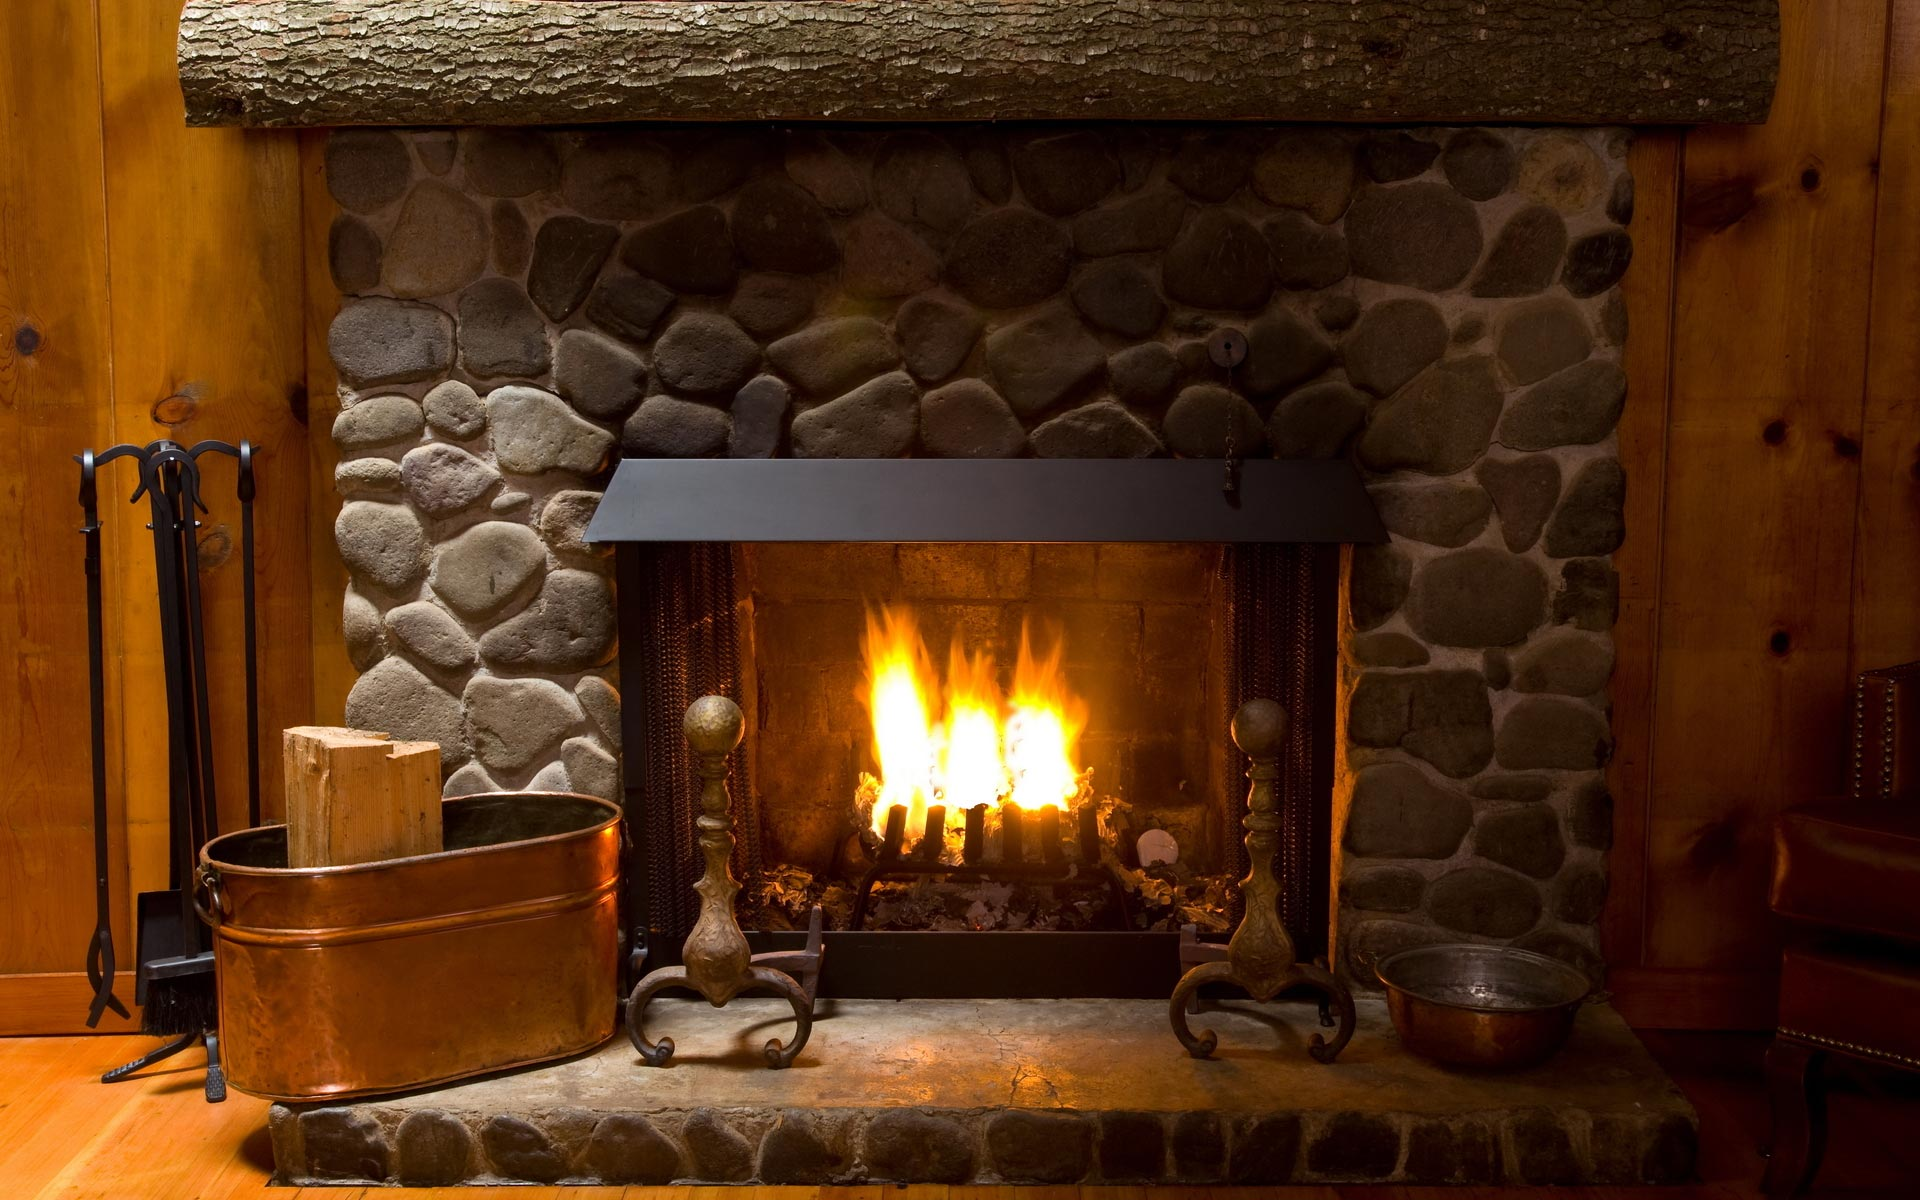 chimney sweeping services fireplace maintenance. Black Bedroom Furniture Sets. Home Design Ideas